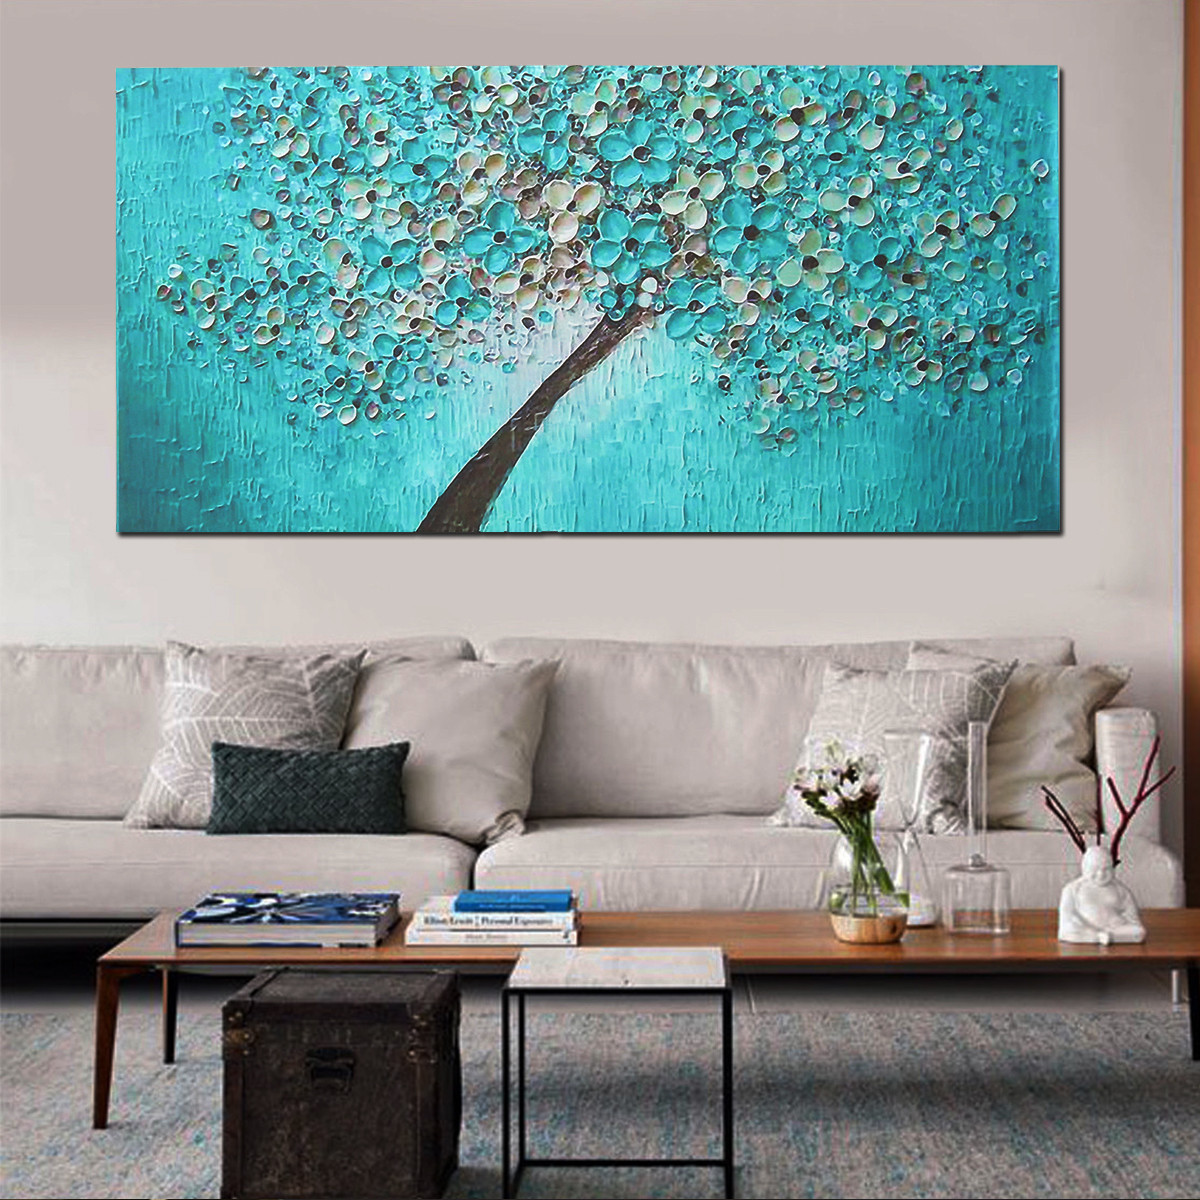 Grtxinshu 5 Kinds of Unframed Print Canvas Painting Picture Shop Office Home Bedroom Wall Art Decor